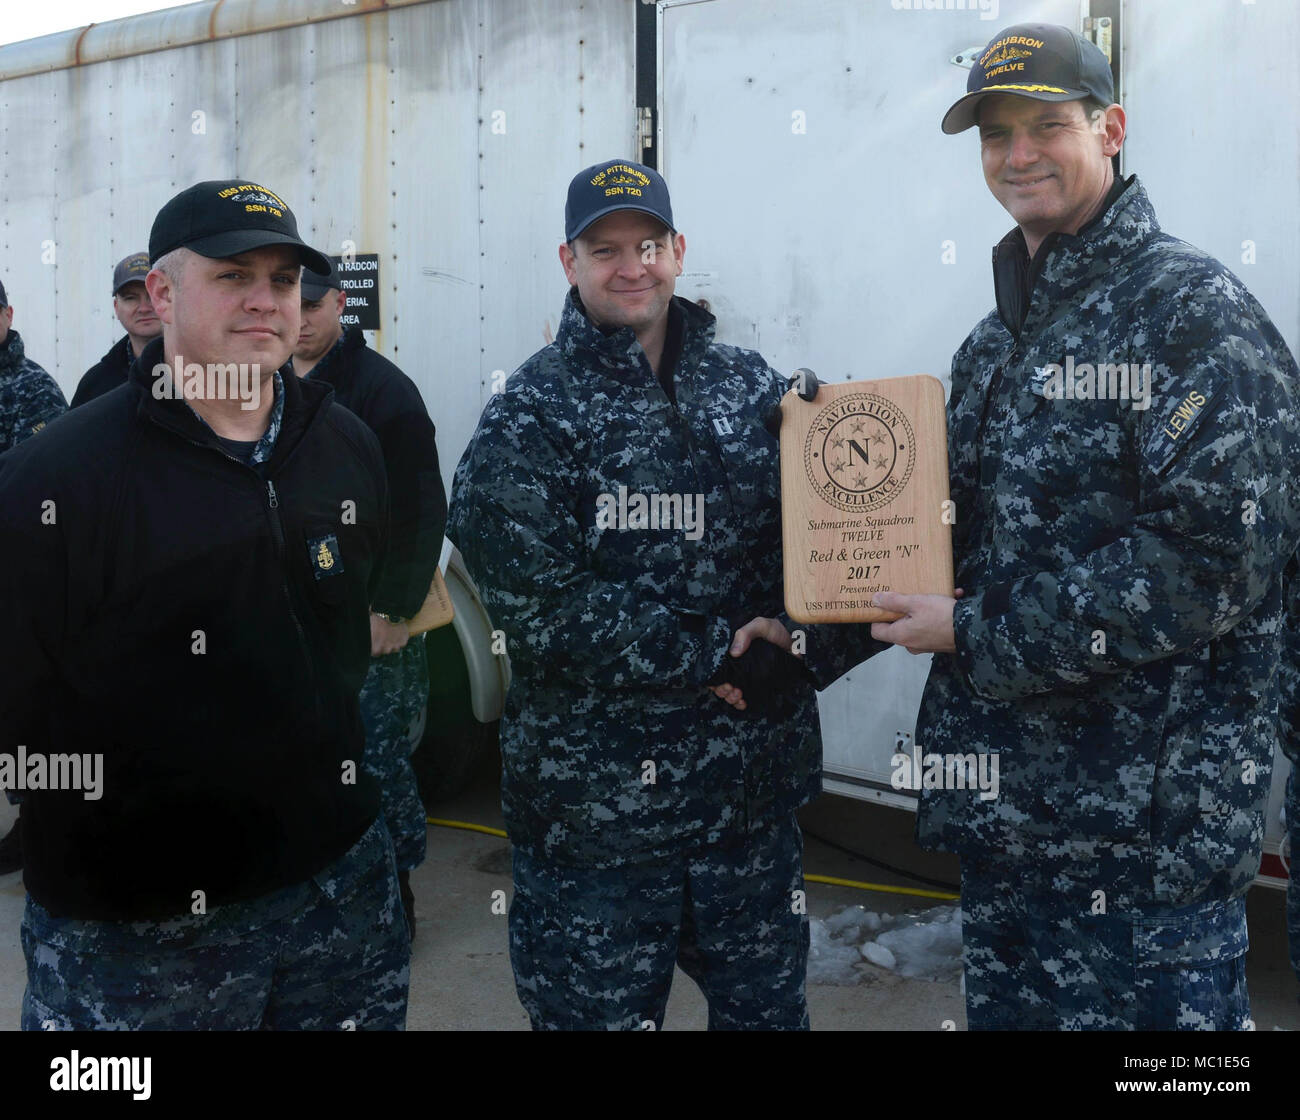 """180119-N-LW591-014 GROTON, Conn. (Jan.19, 2018) Commodore of Submarine Squadron Twelve, Capt. Ollie Lewis presented the Red and Green """"N"""" plaque to representatives of the nuclear-powered, Los Angeles class, fast-attack submarine, USS Pittsburgh (SSN 720), Navigation/Operations department, Lt. Craig Potthast and ETVC David Jackson, Friday, Jan. 19, 2018 onboard Submarine Base New London Groton, Conn.  The Red and Green """"N"""" Navigation/Operations award is part of the Battle Efficiency Competition that's conducted to strengthen and evaluate command and overall force warfighting readiness and to re - Stock Image"""